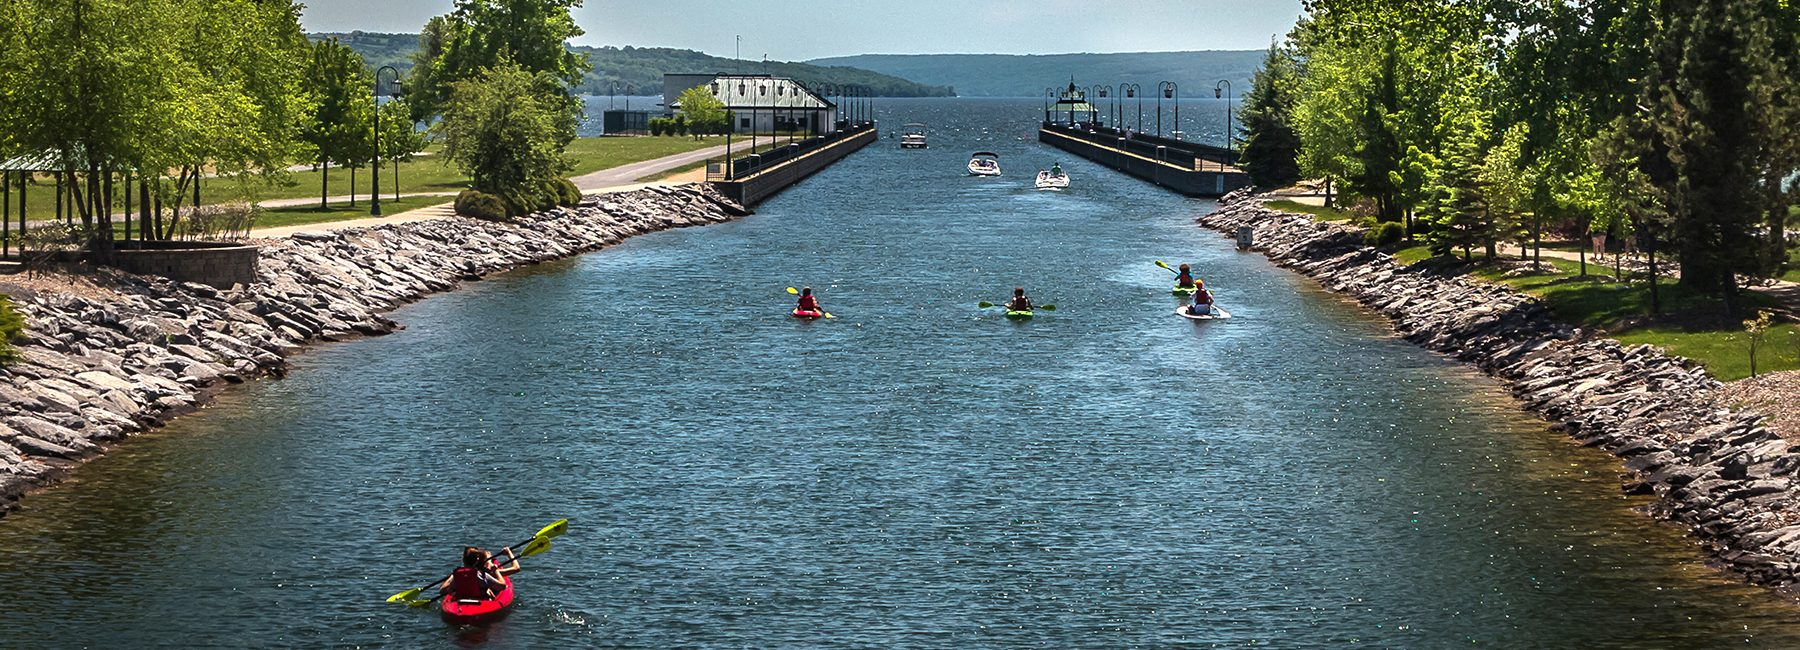 Kayaks entering Owasco Lake, Cayuga County, NY